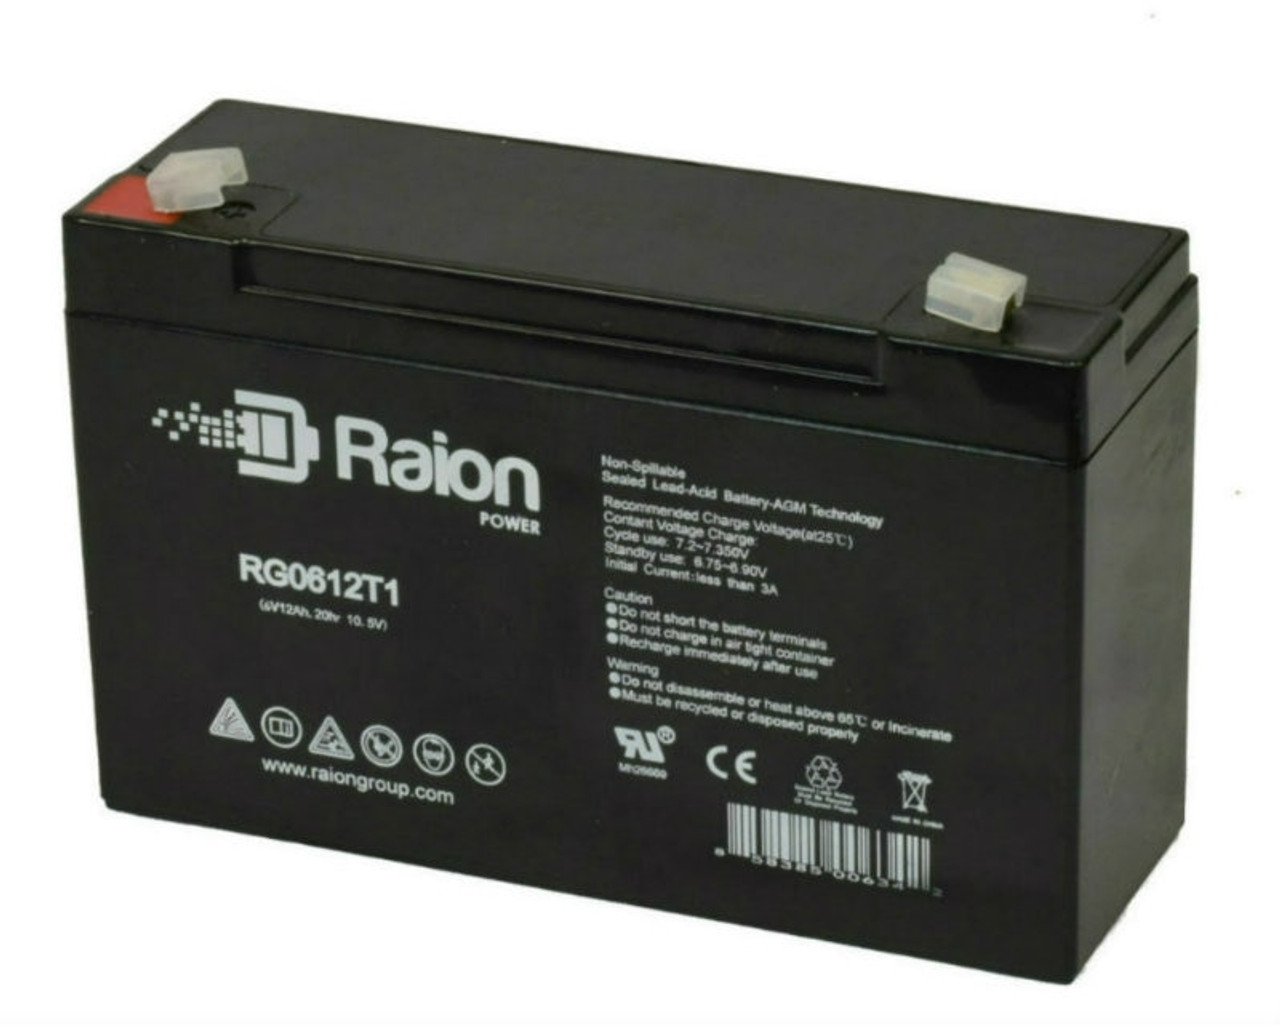 Raion Power RG06120T1 Replacement Battery Pack for Siltron SPC19 emergency light